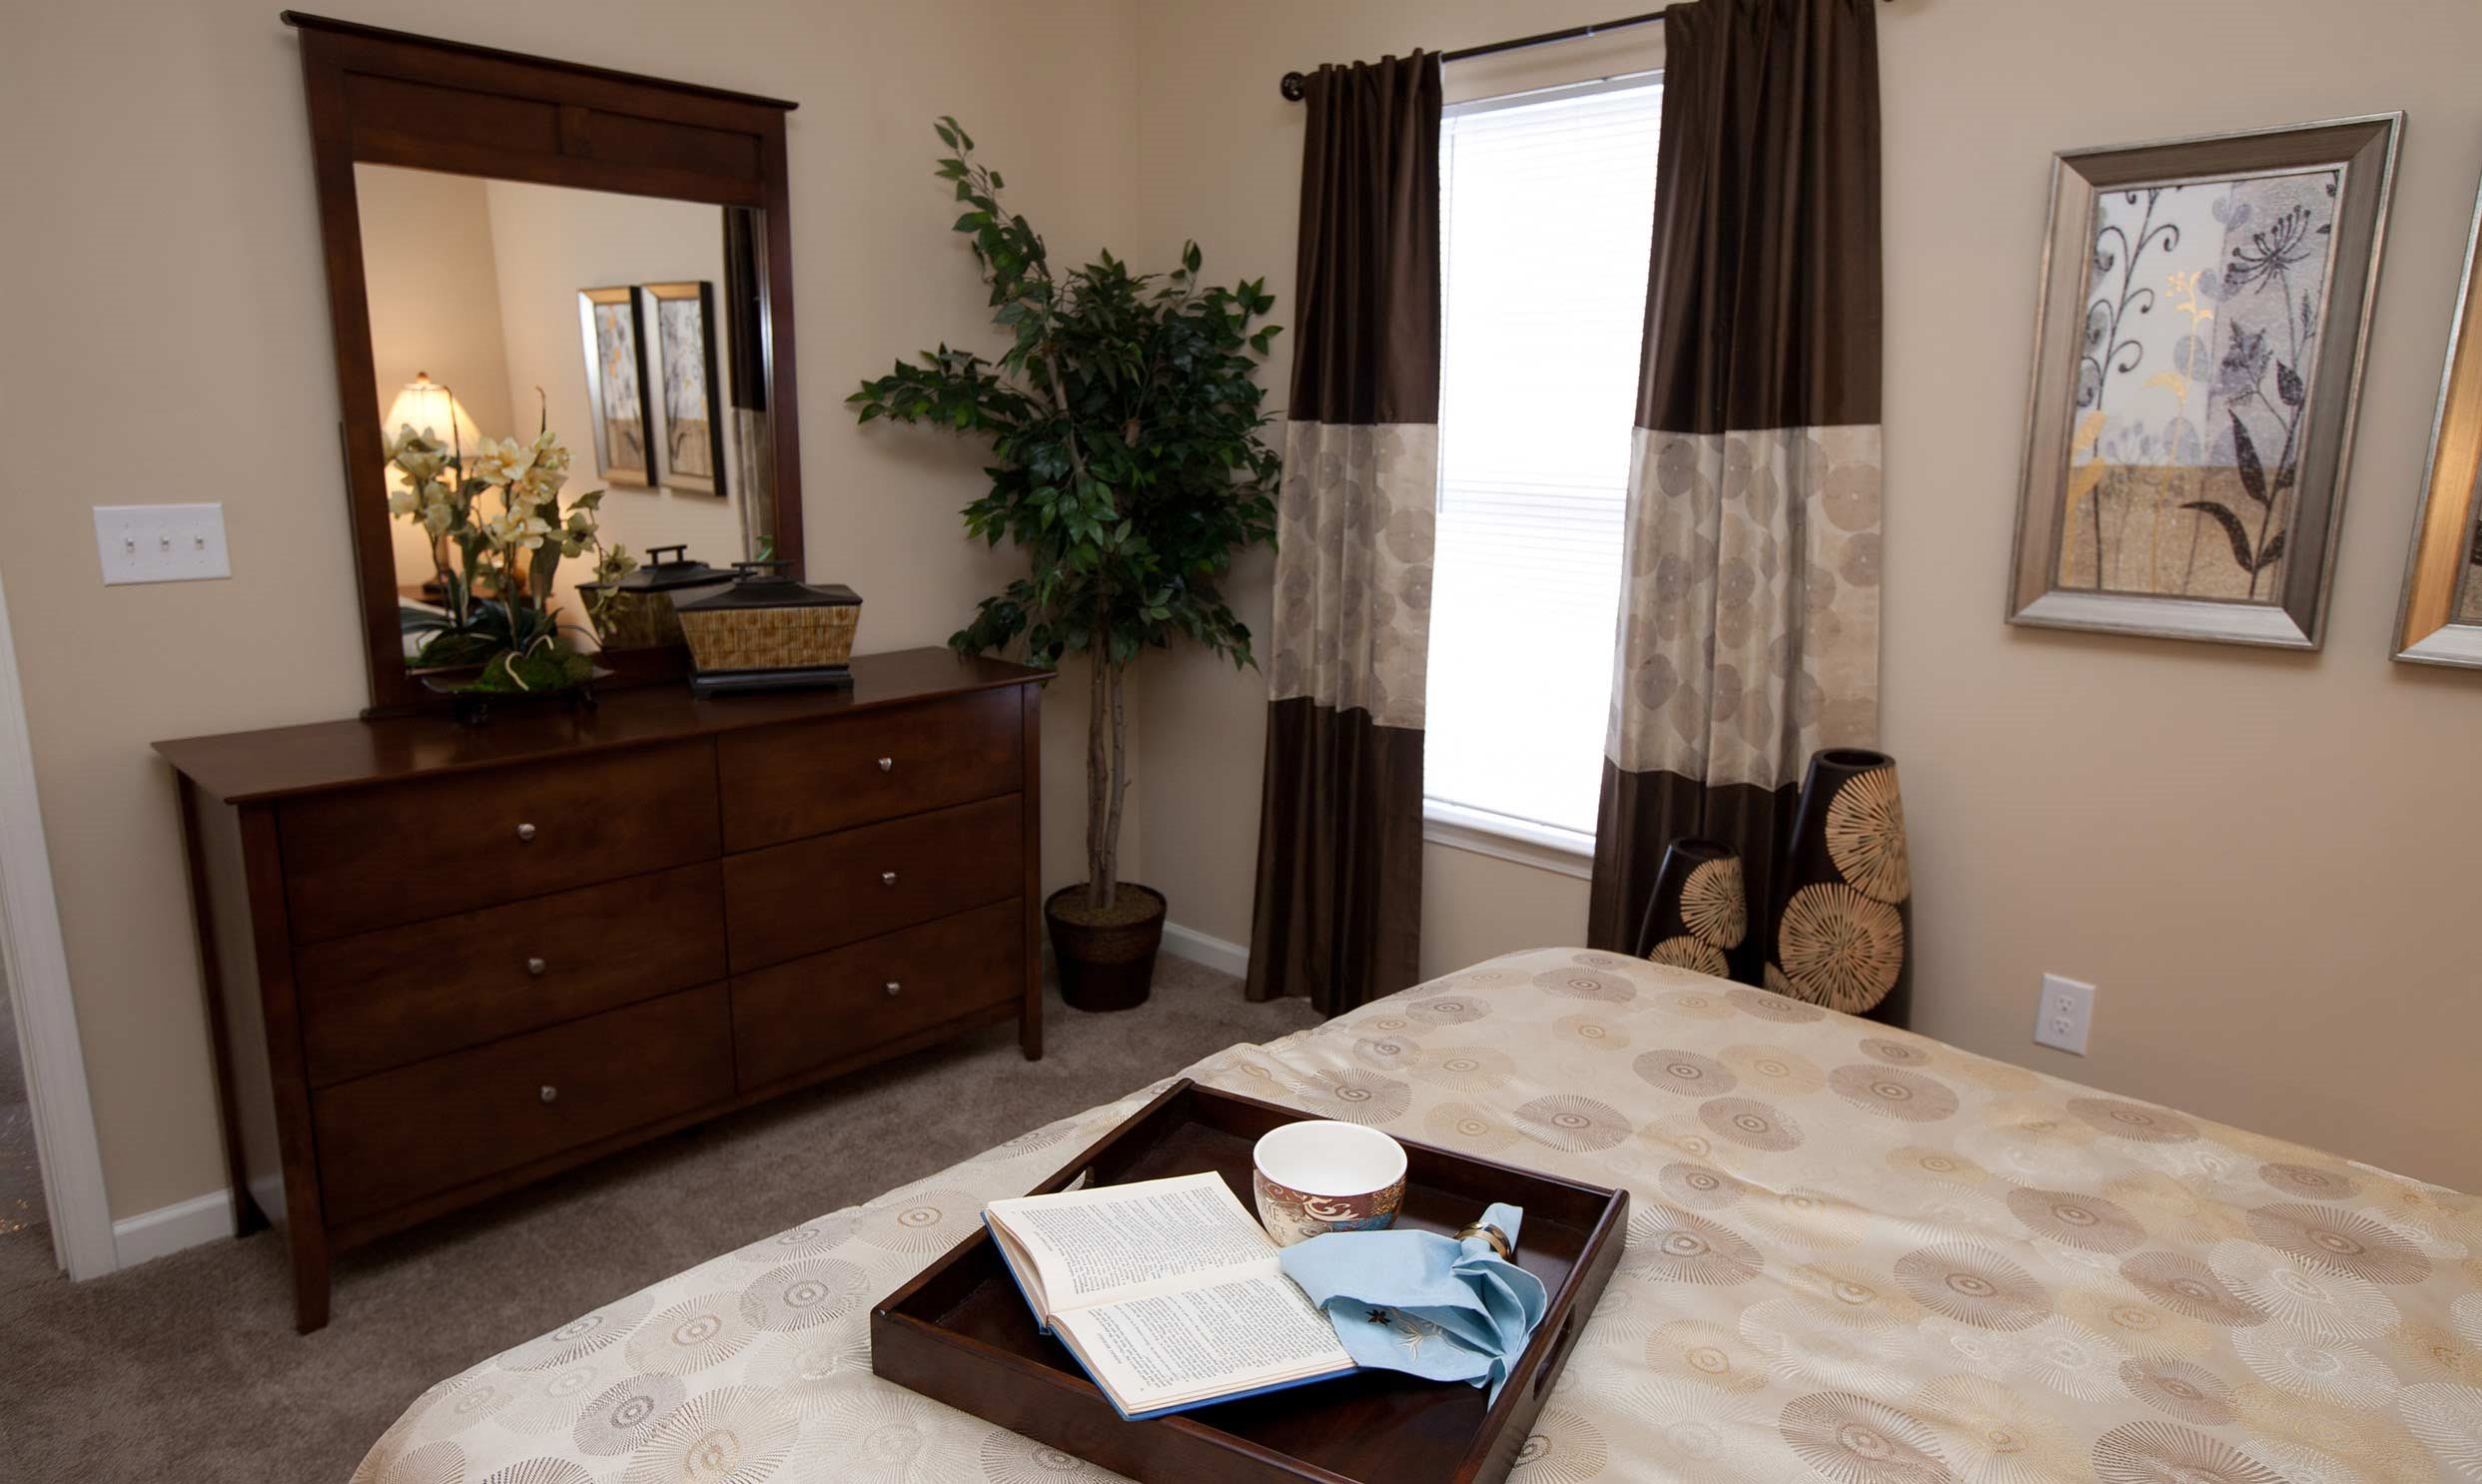 One Bedroom Apartments-Apartments at Grand Prairie, Peoria, Illinois